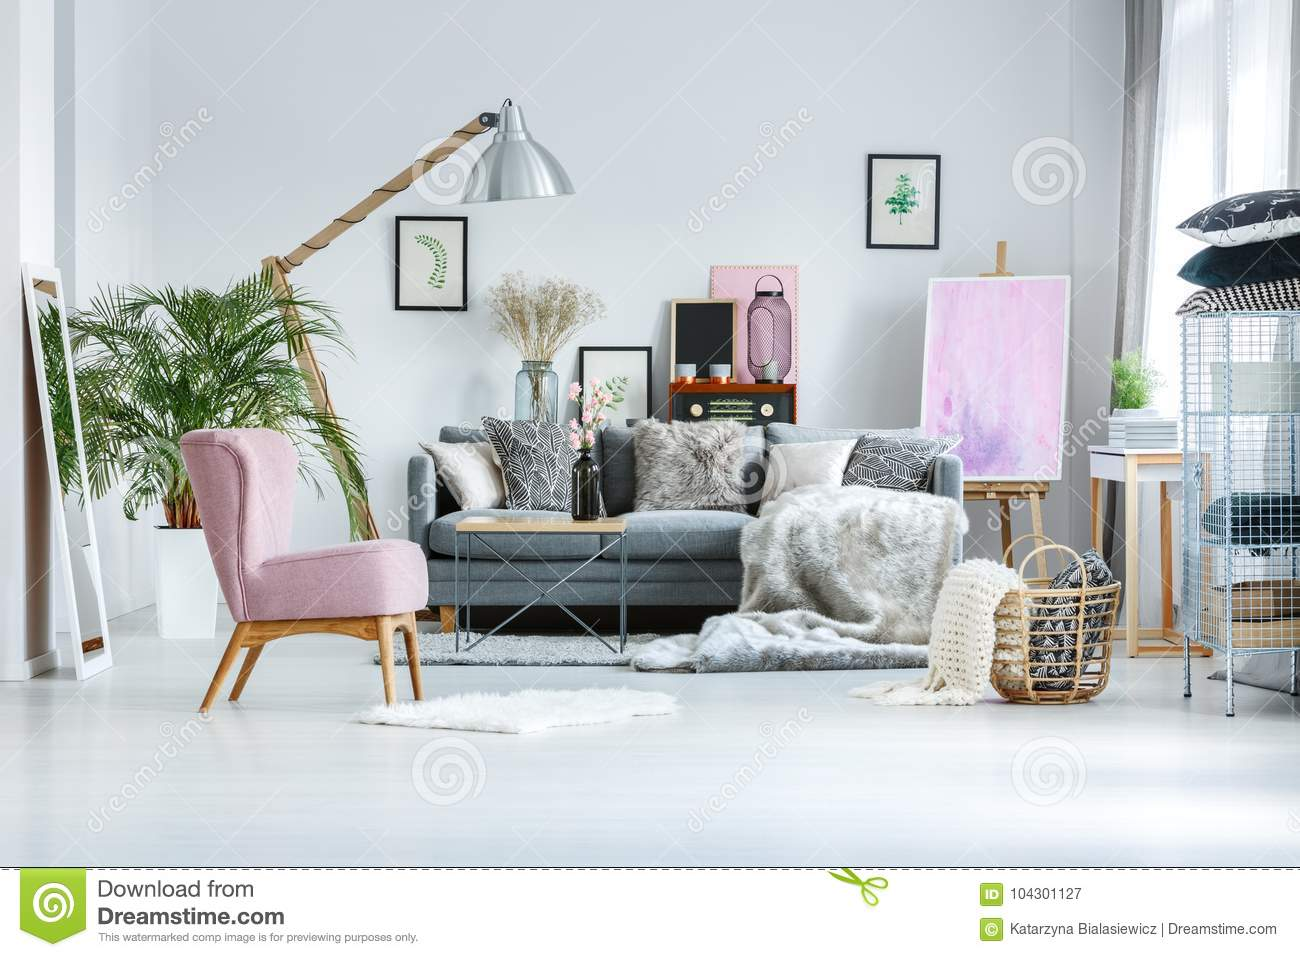 Living Room With Pink Accents Stock Image - Image of ...